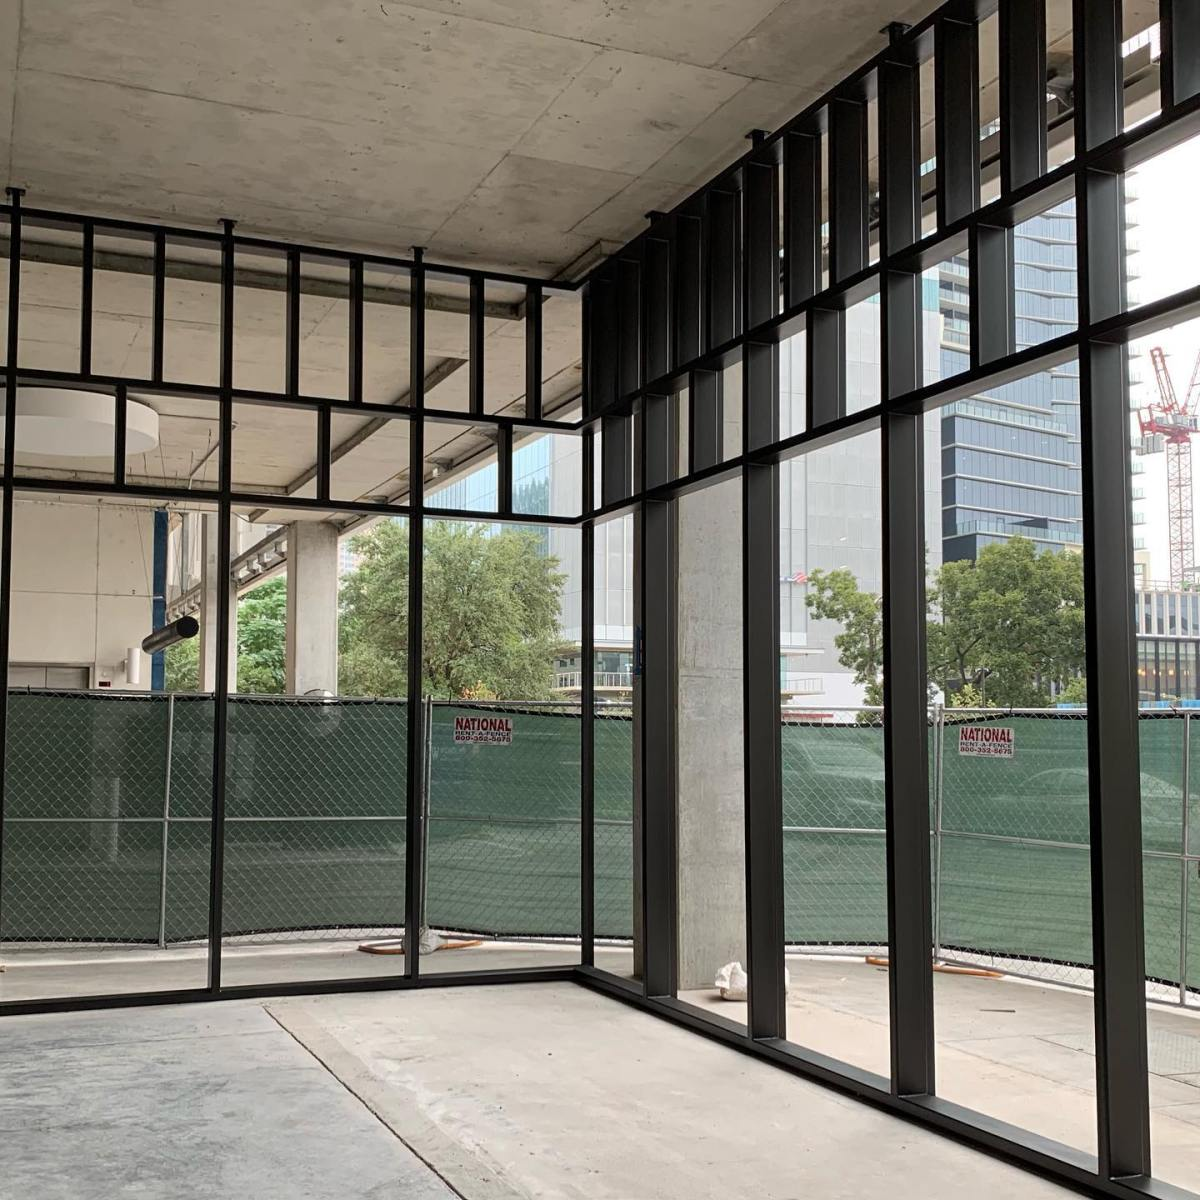 And we're done, well glazing is on the way as well. Bespoke design and craftsmanship by our team @michaelwesandco @theindependentaustin future Headquarters for @urbanspacerealtors